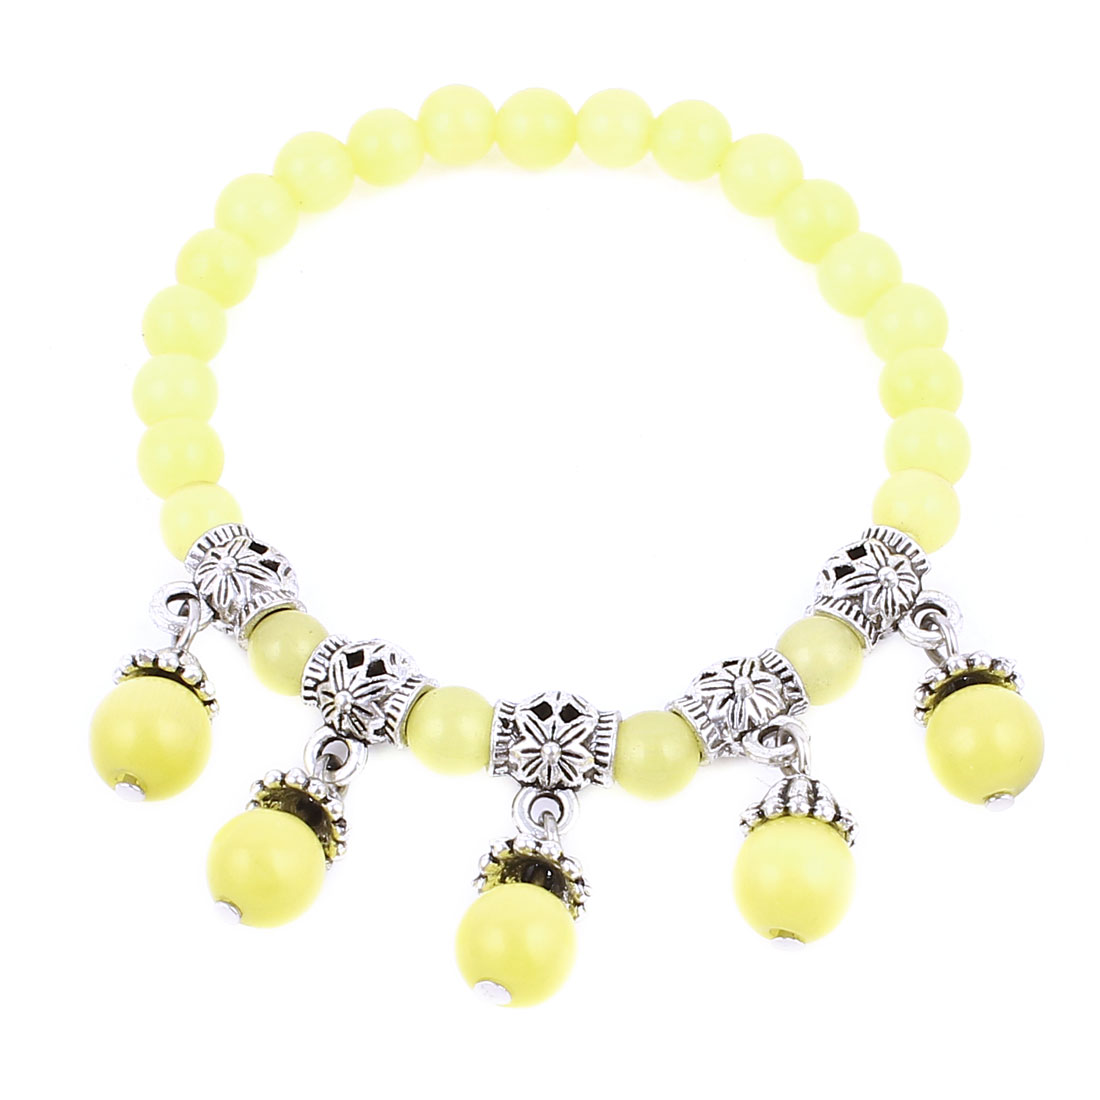 Lady Manmade Faceted Opal Bead Yellow Silver Tone Decor Stretchy Bracelet